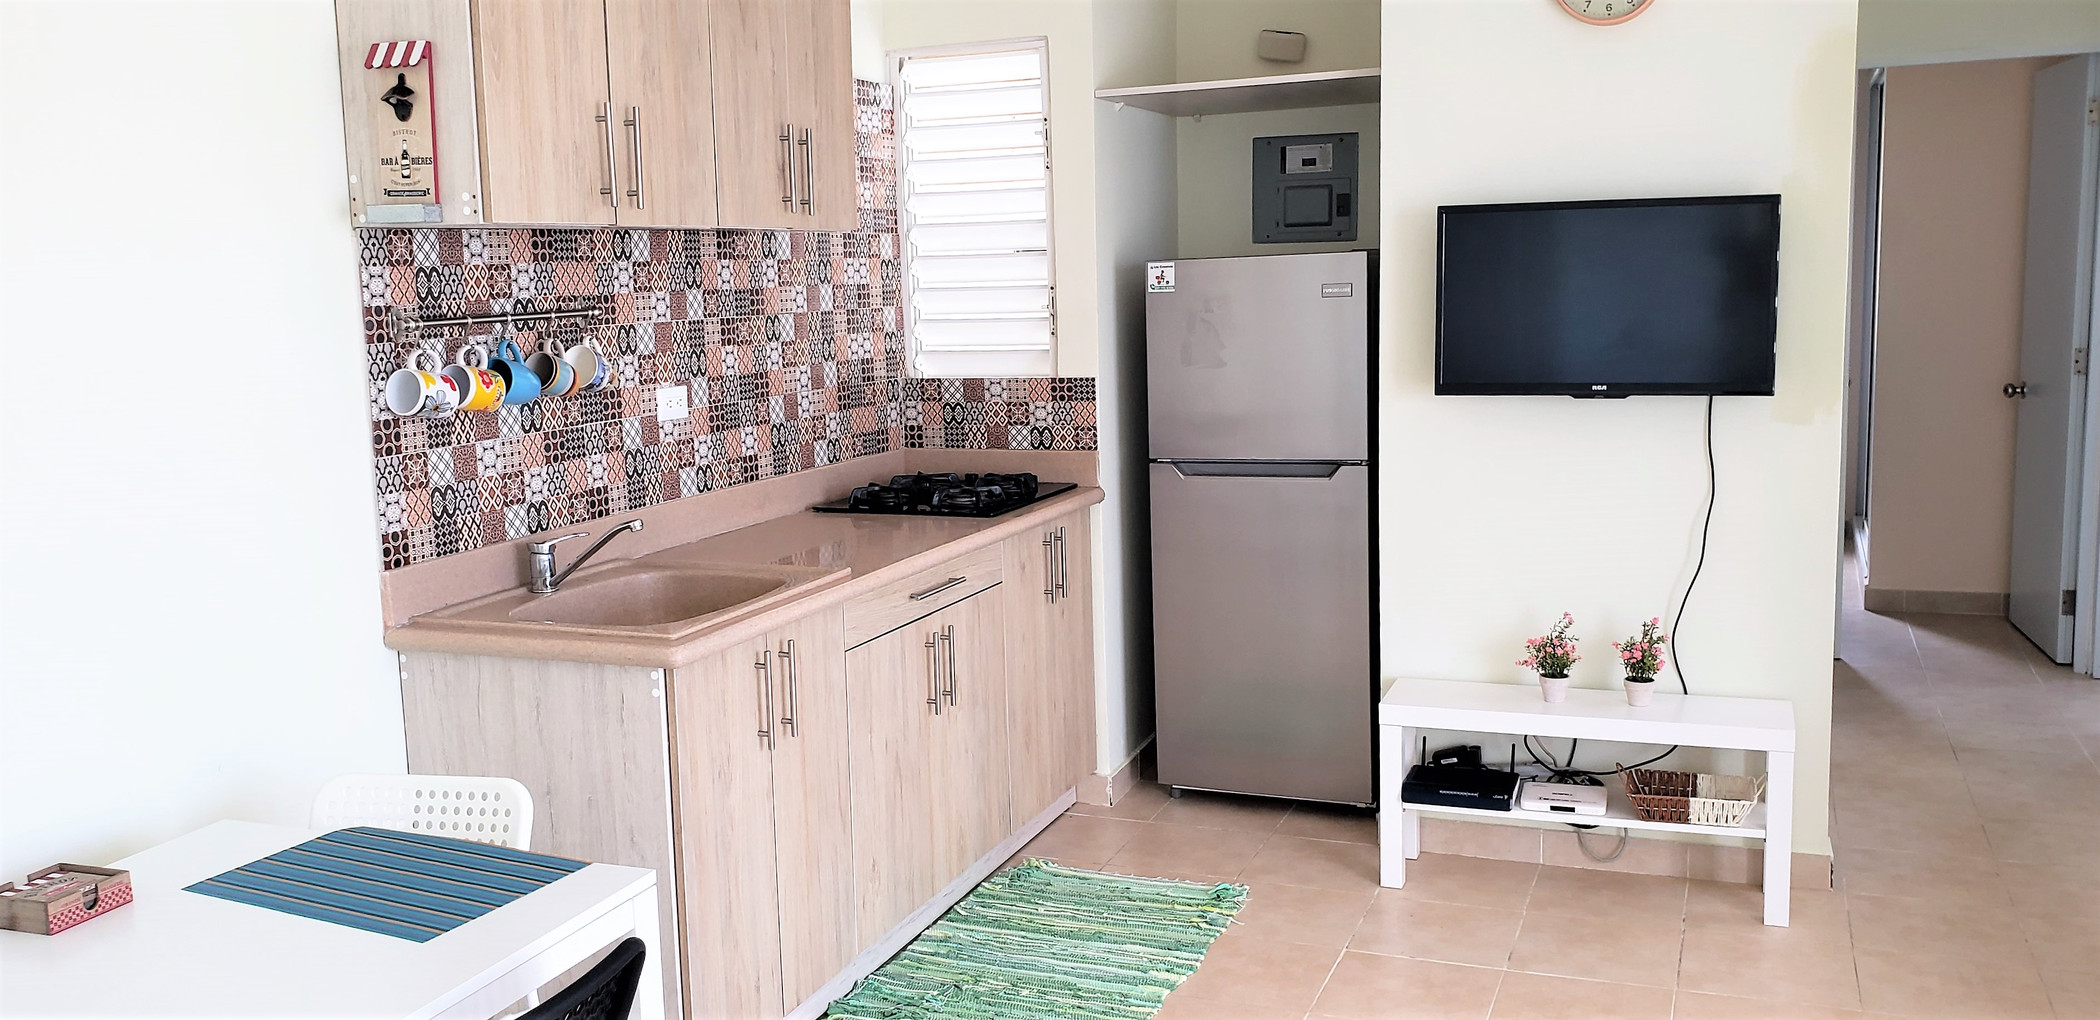 Apartment with high ceilings in Ciudad Las Cayenas (301-CAE21C)